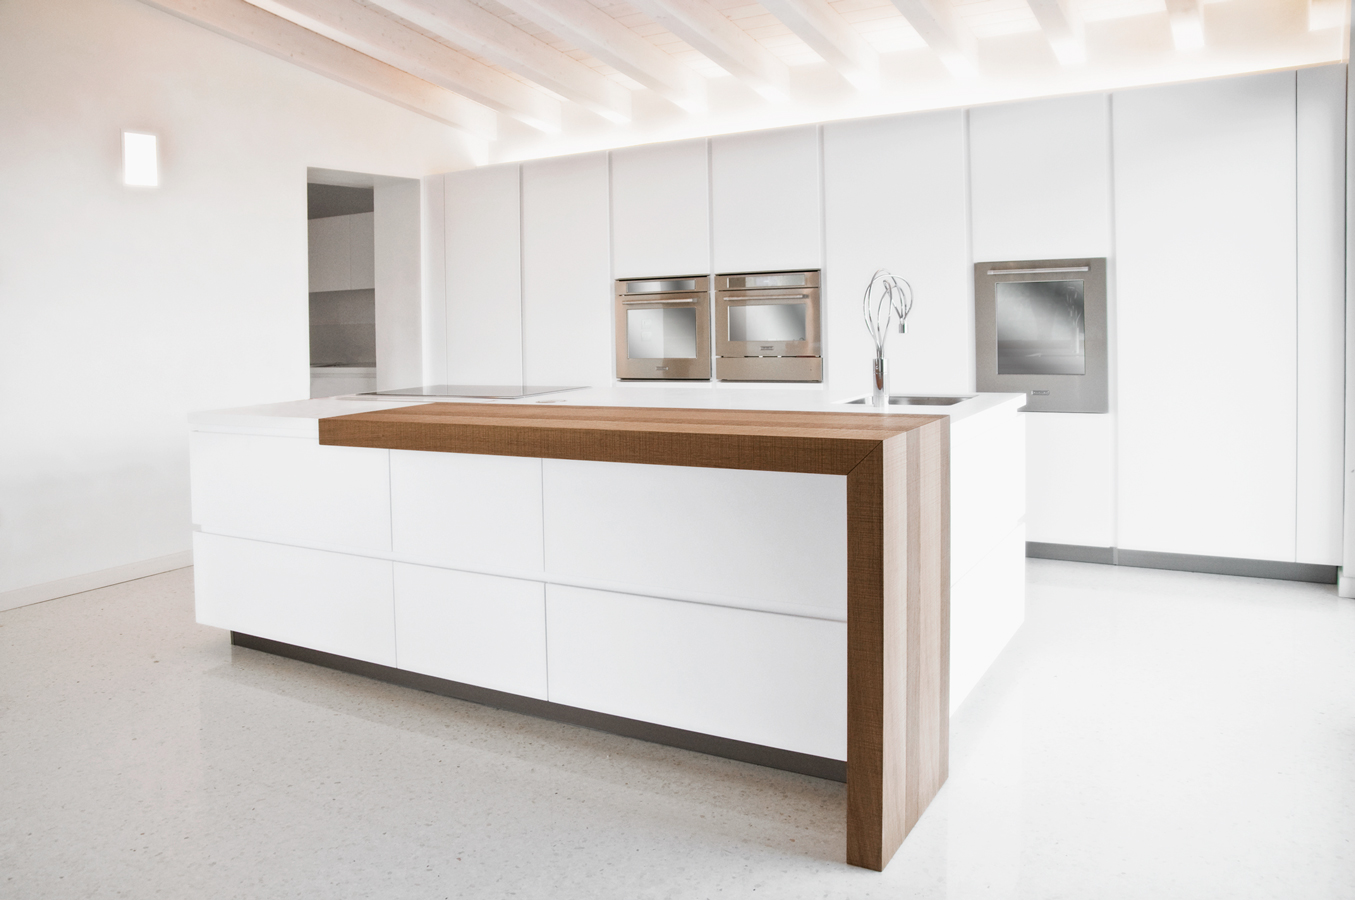 Thank You For Sharing Our Project! #61442D 1355 900 Cucine Moderne Con Piano Snack